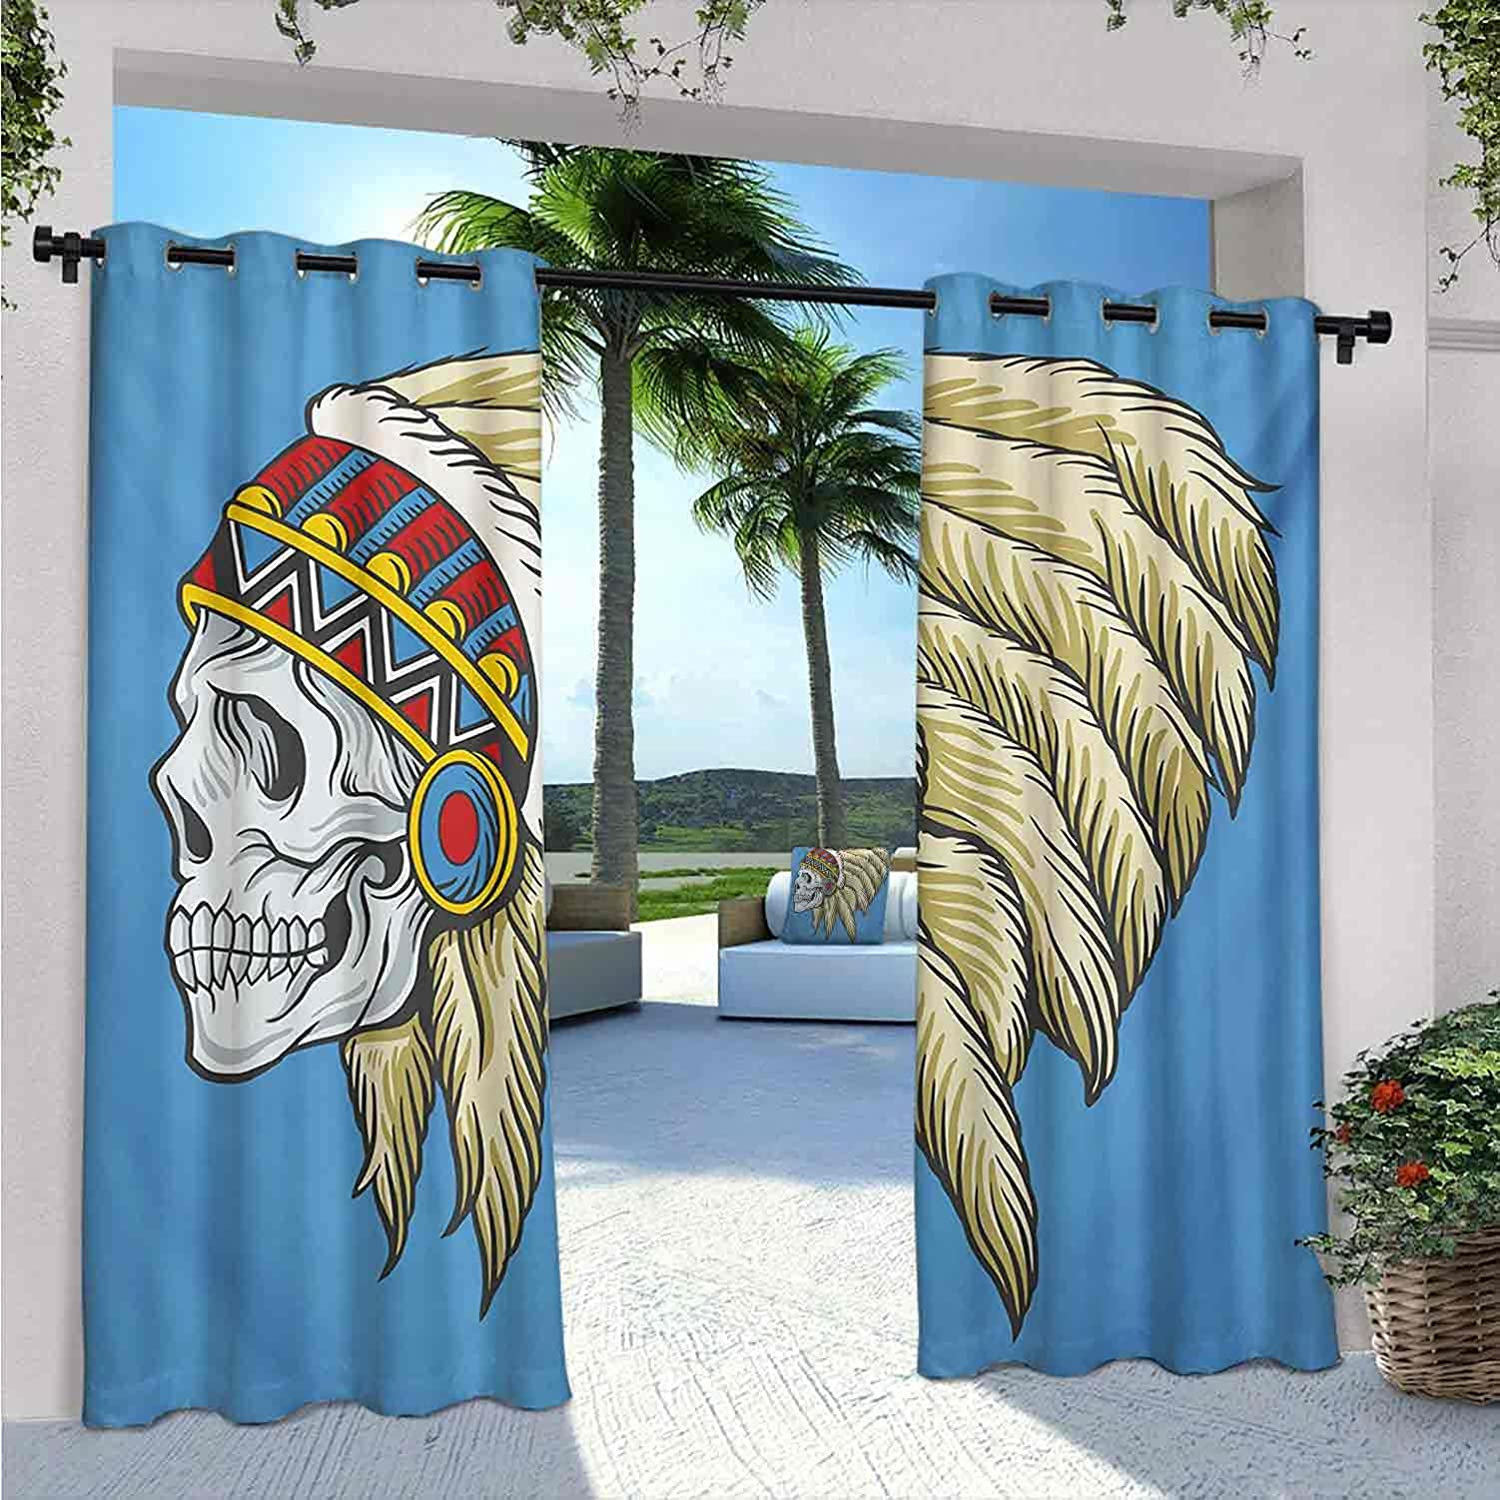 TribaOutdoor Curtains for Patio American Sales sale Inventory cleanup selling sale Dead Waterproof Native